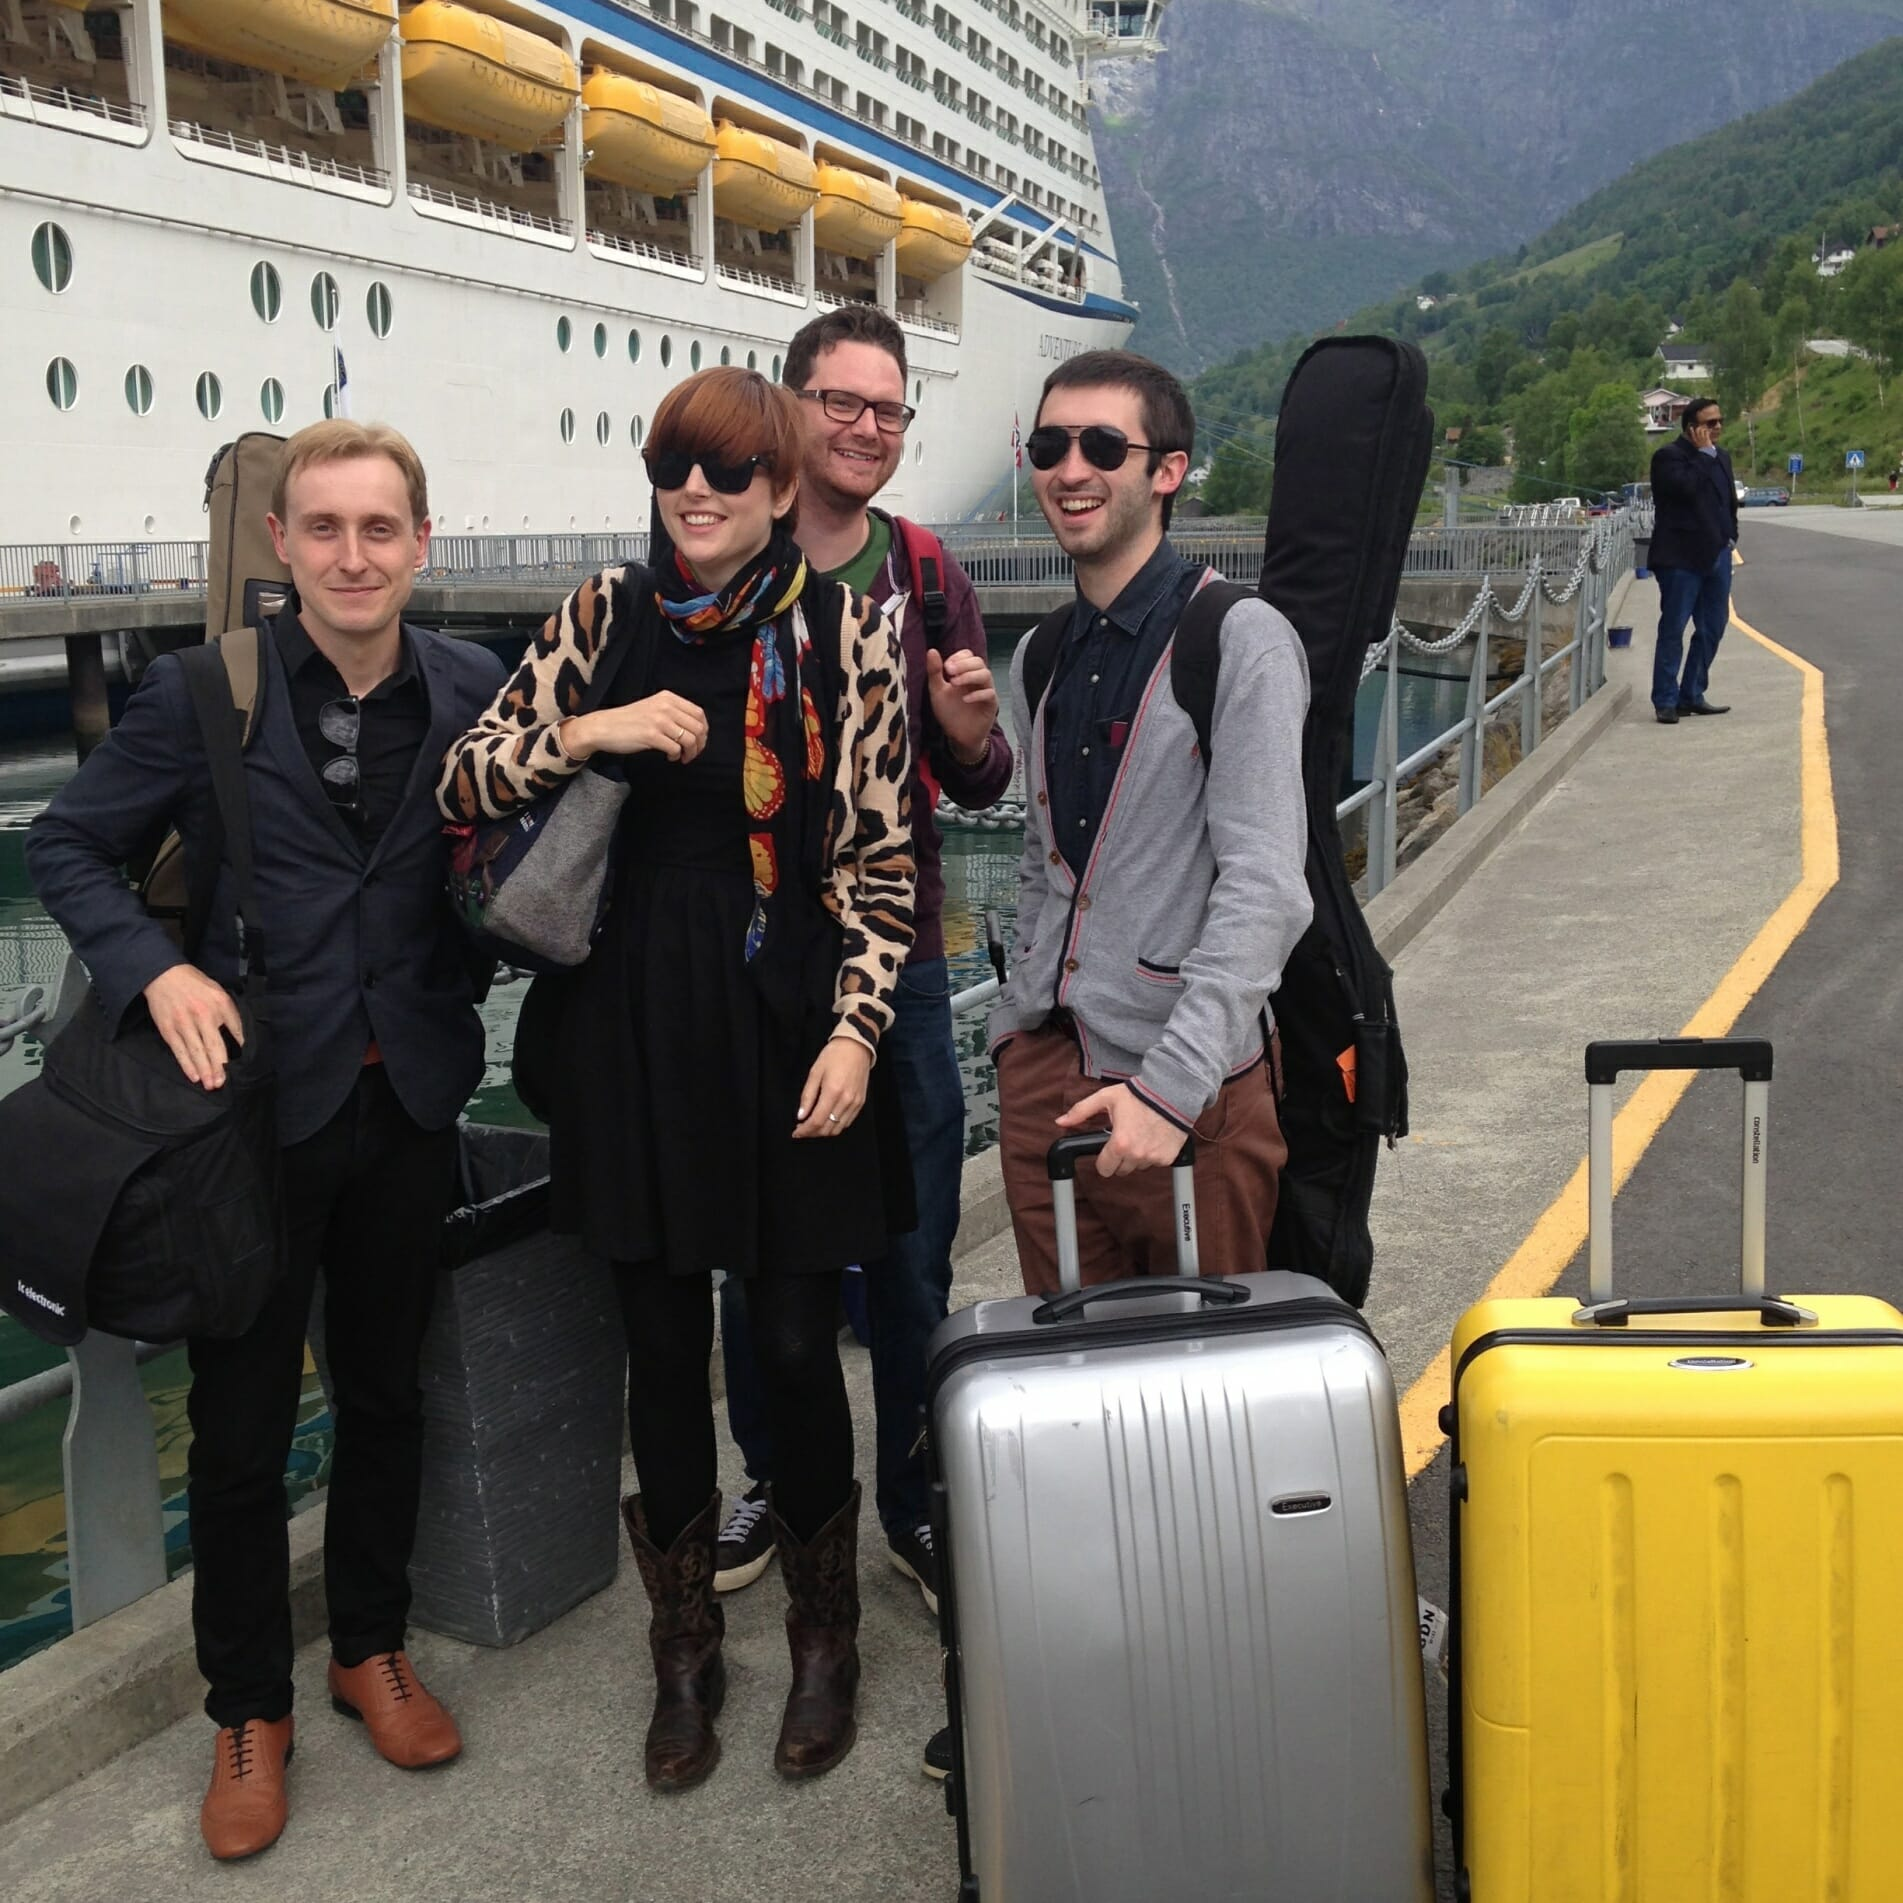 The Zoots go to Loen, Norway, June 2014. The Zoots band, Norway, Fjords, Scenic, The Zoots wedding band, Wedding bands in Wiltshire, Wedding band in Dorset, Wedding bands in The South West, Party Band, 60s band, 1960s band, Wedding music, Band for NYE, bands in Wiltshire, Party Band South West,